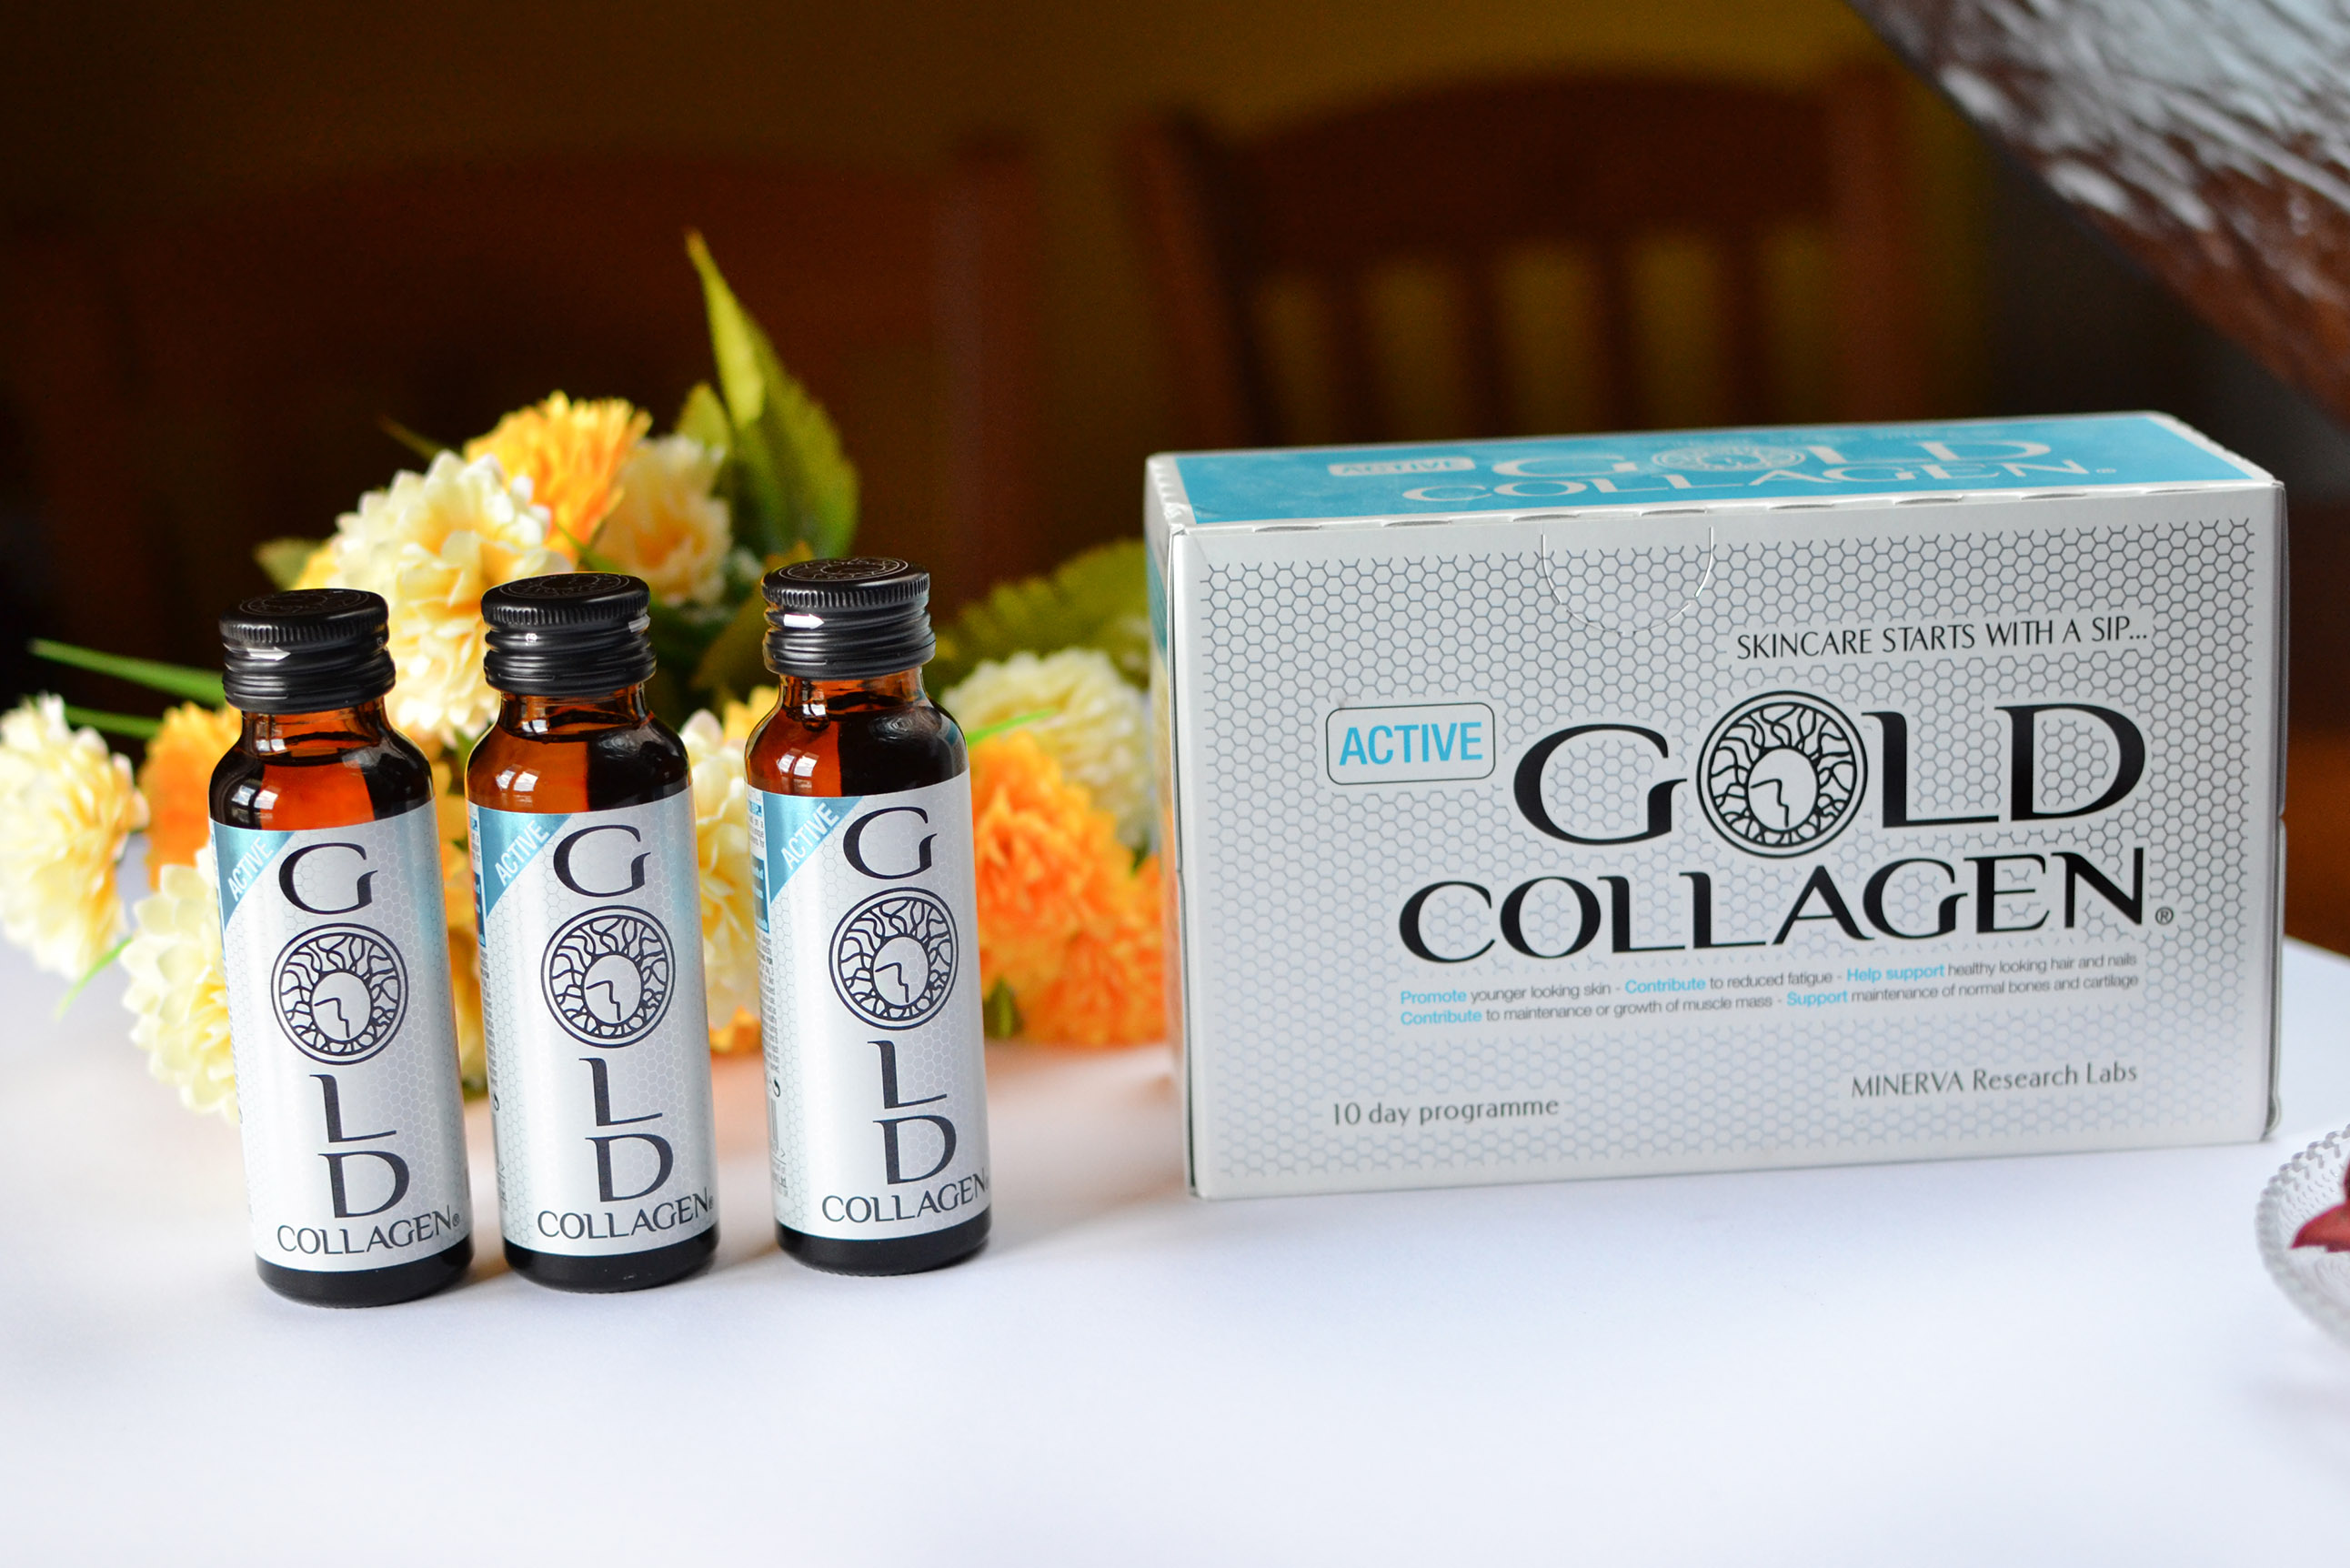 Gold Collagen Active